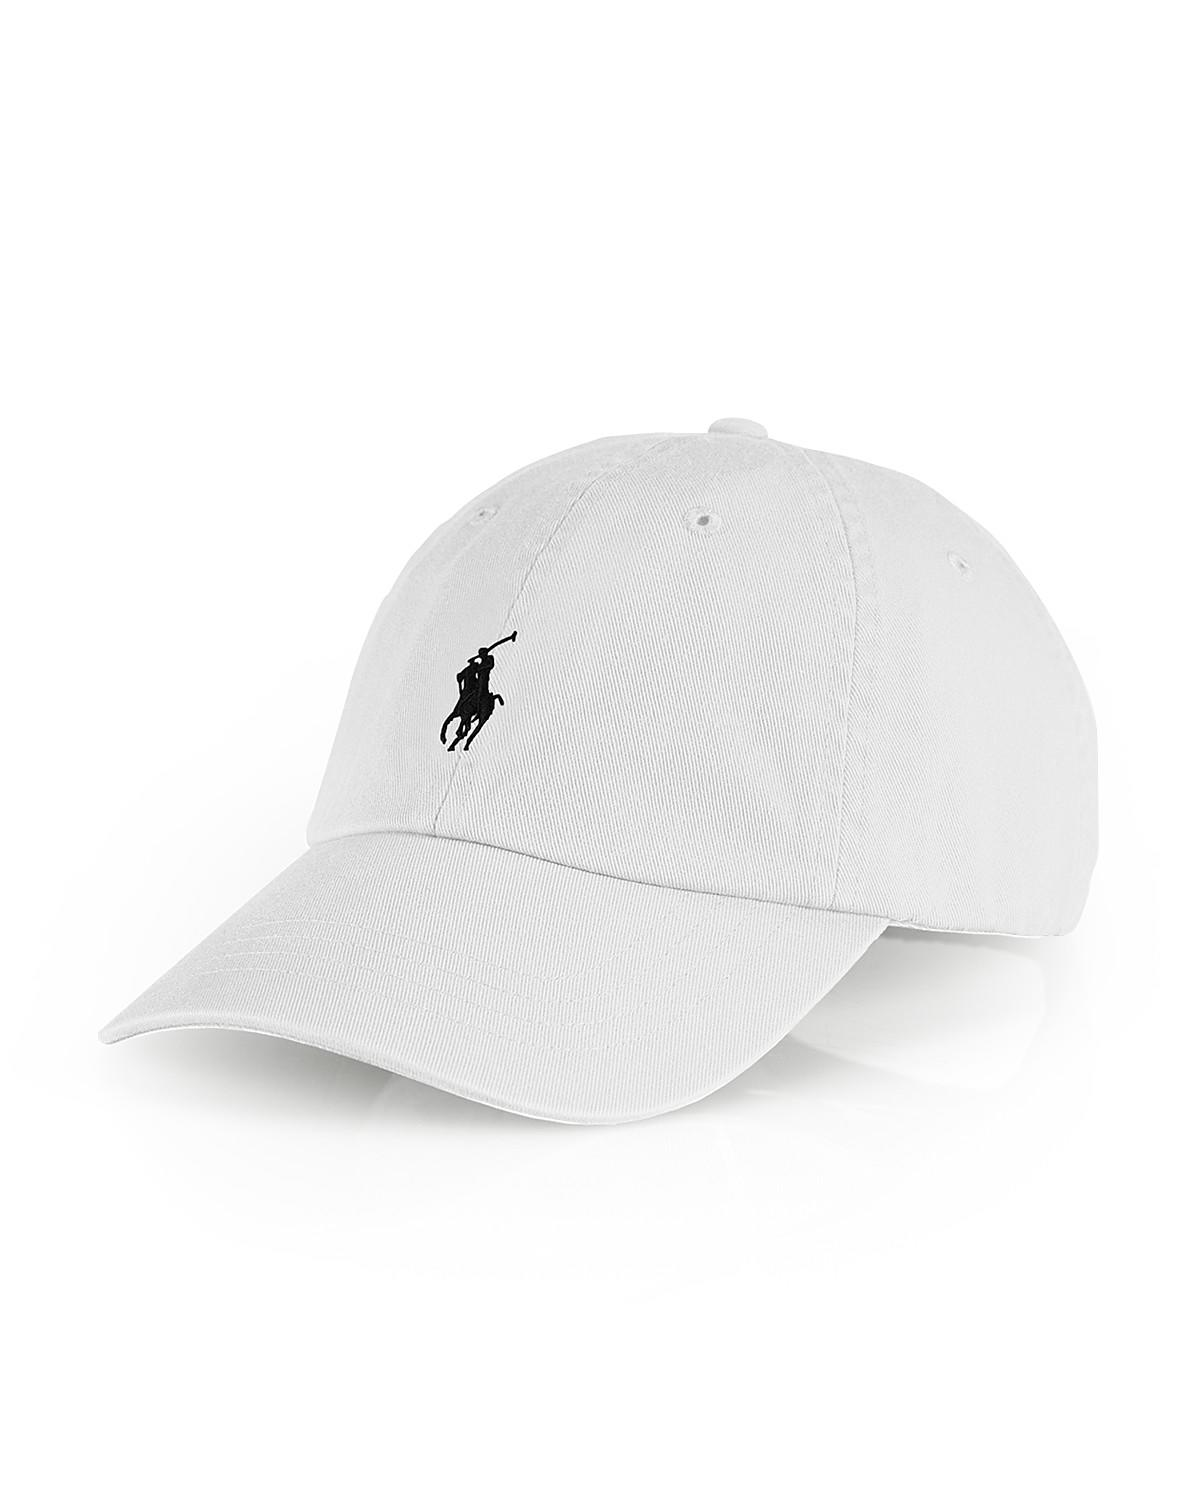 polo ralph lauren signature pony hat from bloomingdale 39 s. Black Bedroom Furniture Sets. Home Design Ideas